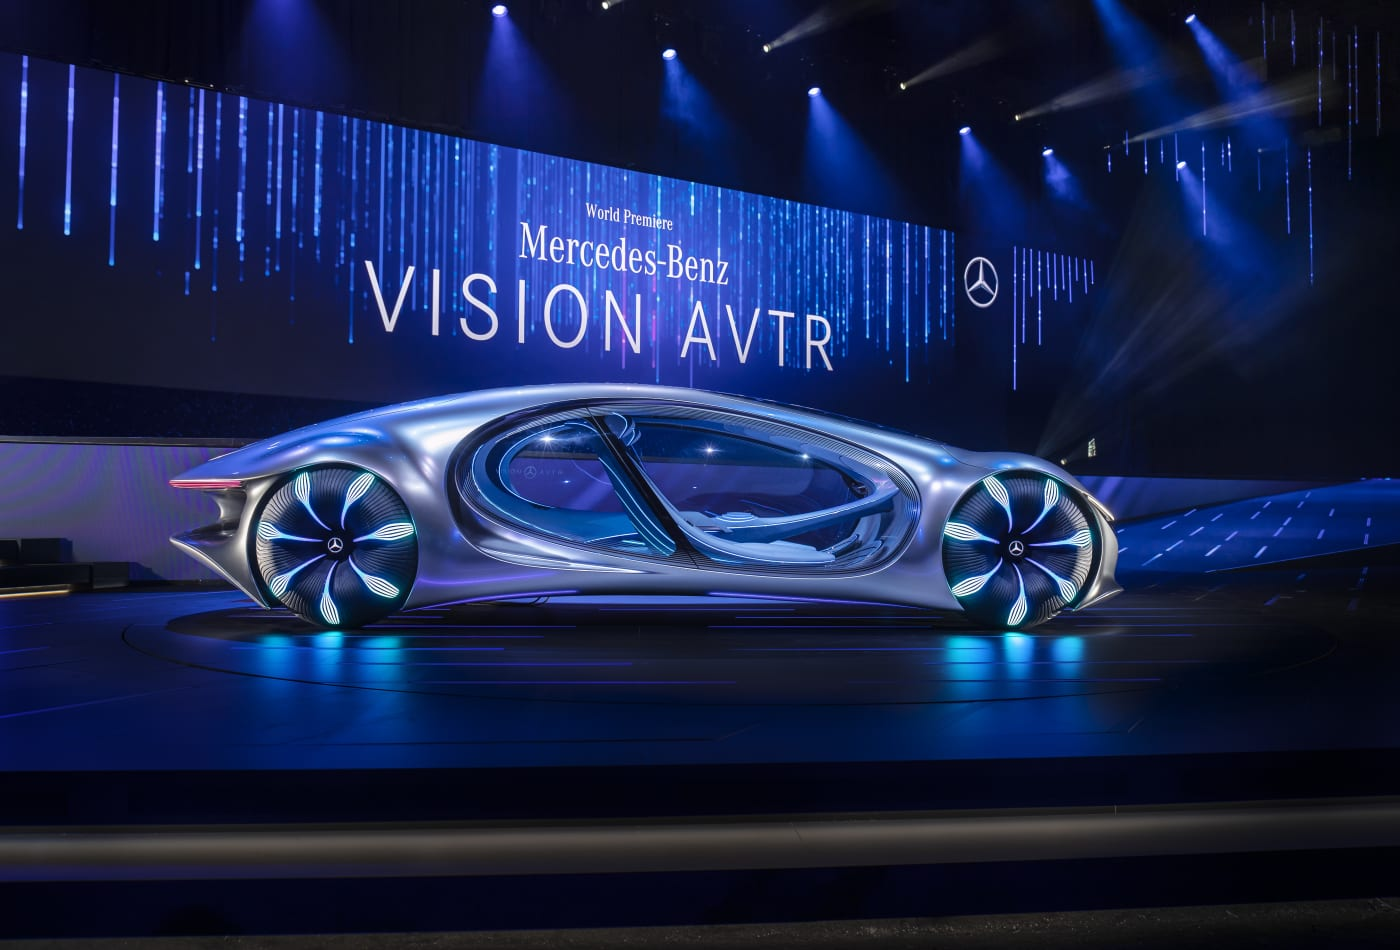 Photo of Mercedes-Benz Future Vehicle called Vision AVTR